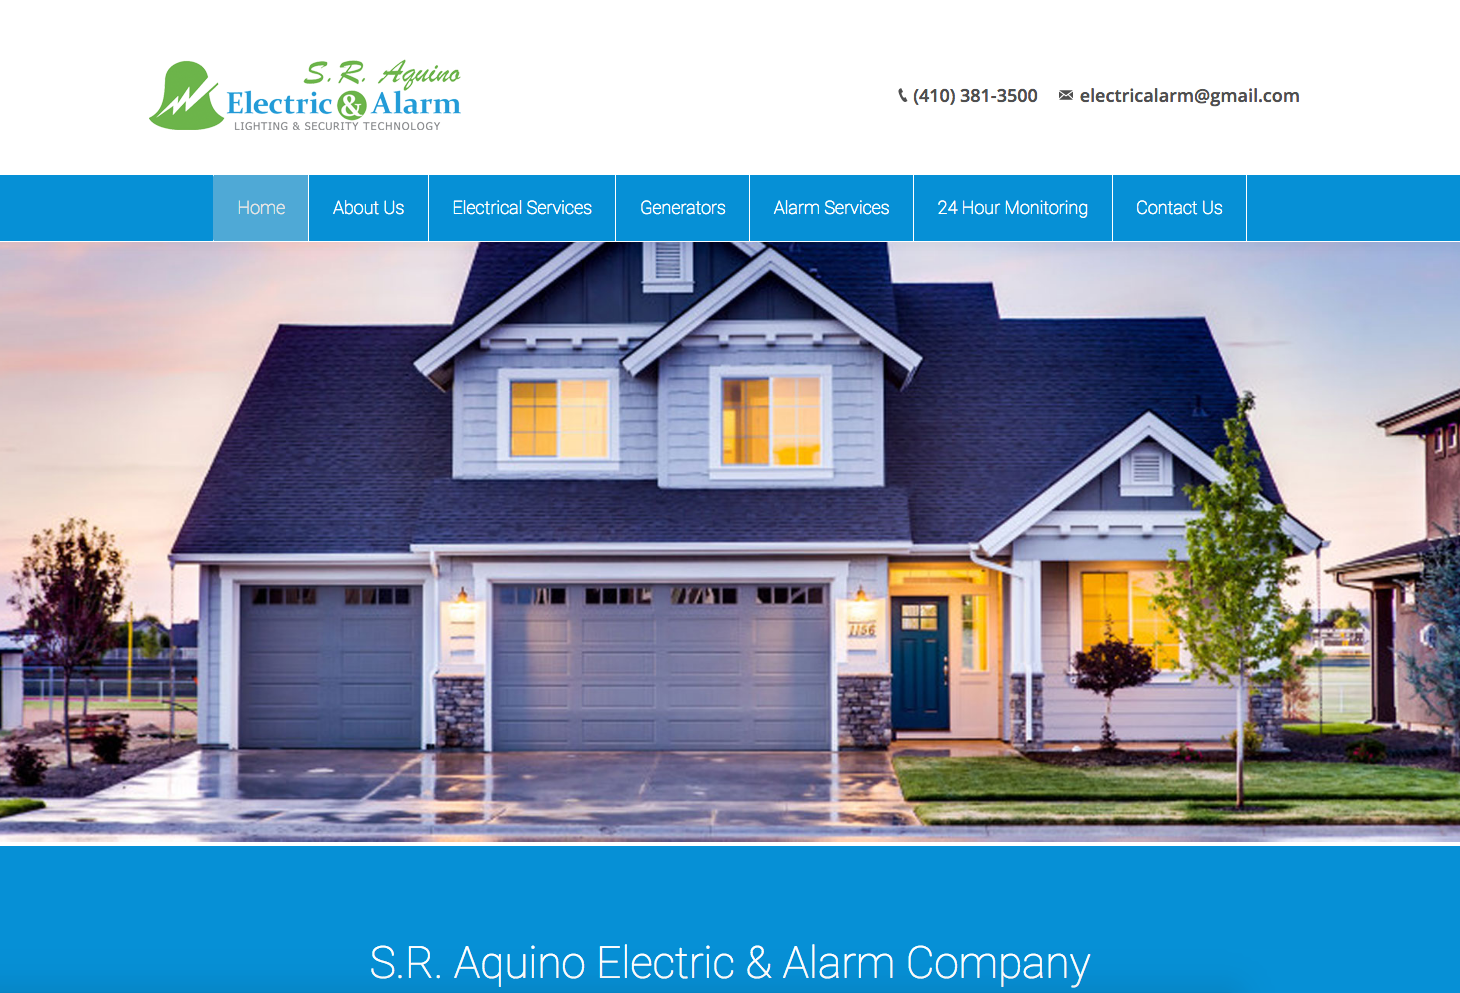 Steve Aquino Electric Alarm Company Website Design